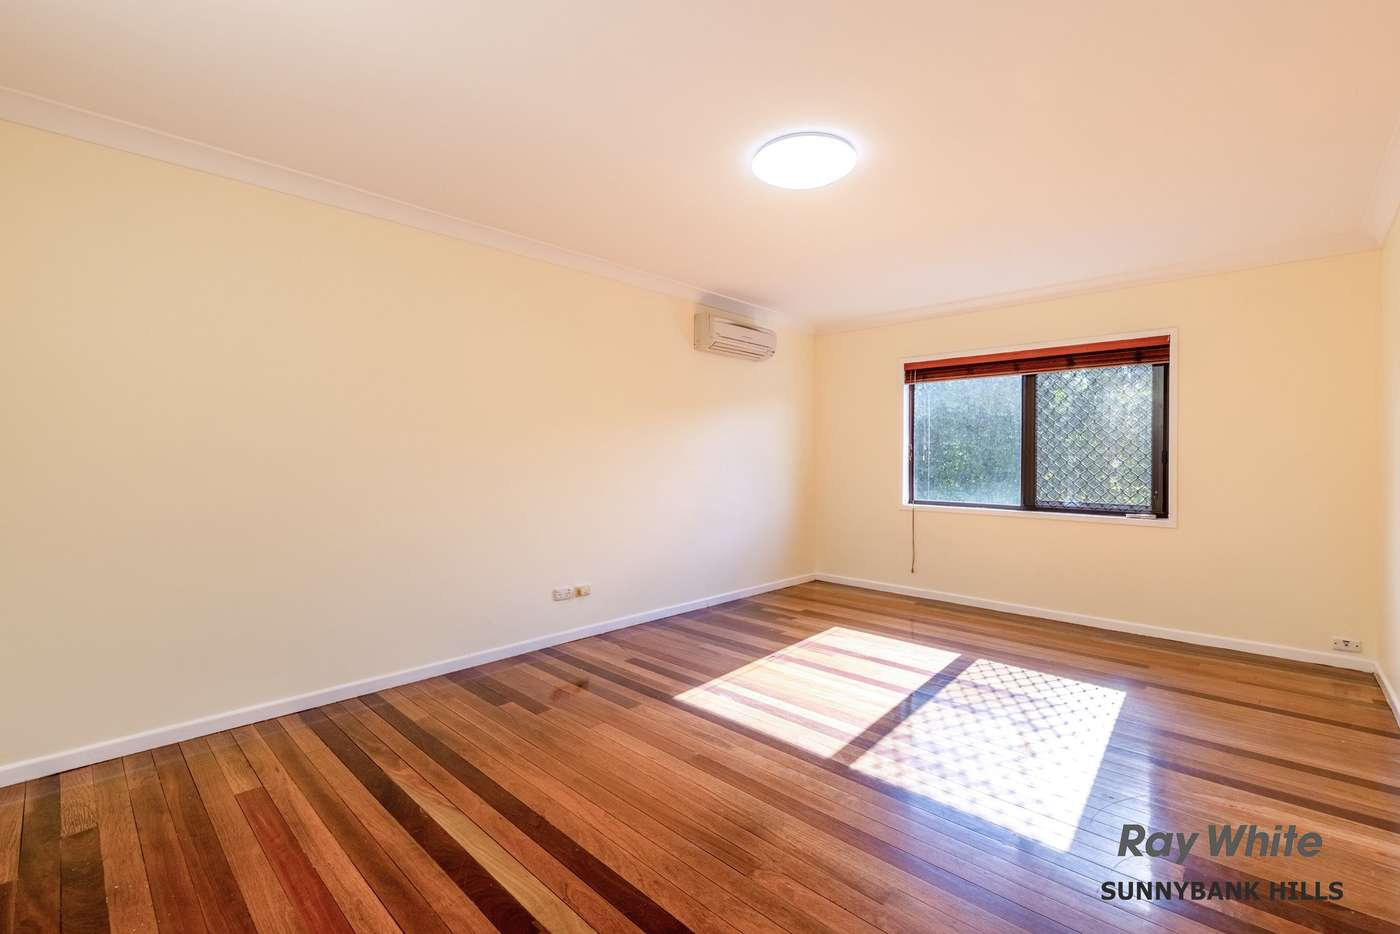 Seventh view of Homely house listing, 207 Gowan Road, Sunnybank Hills QLD 4109